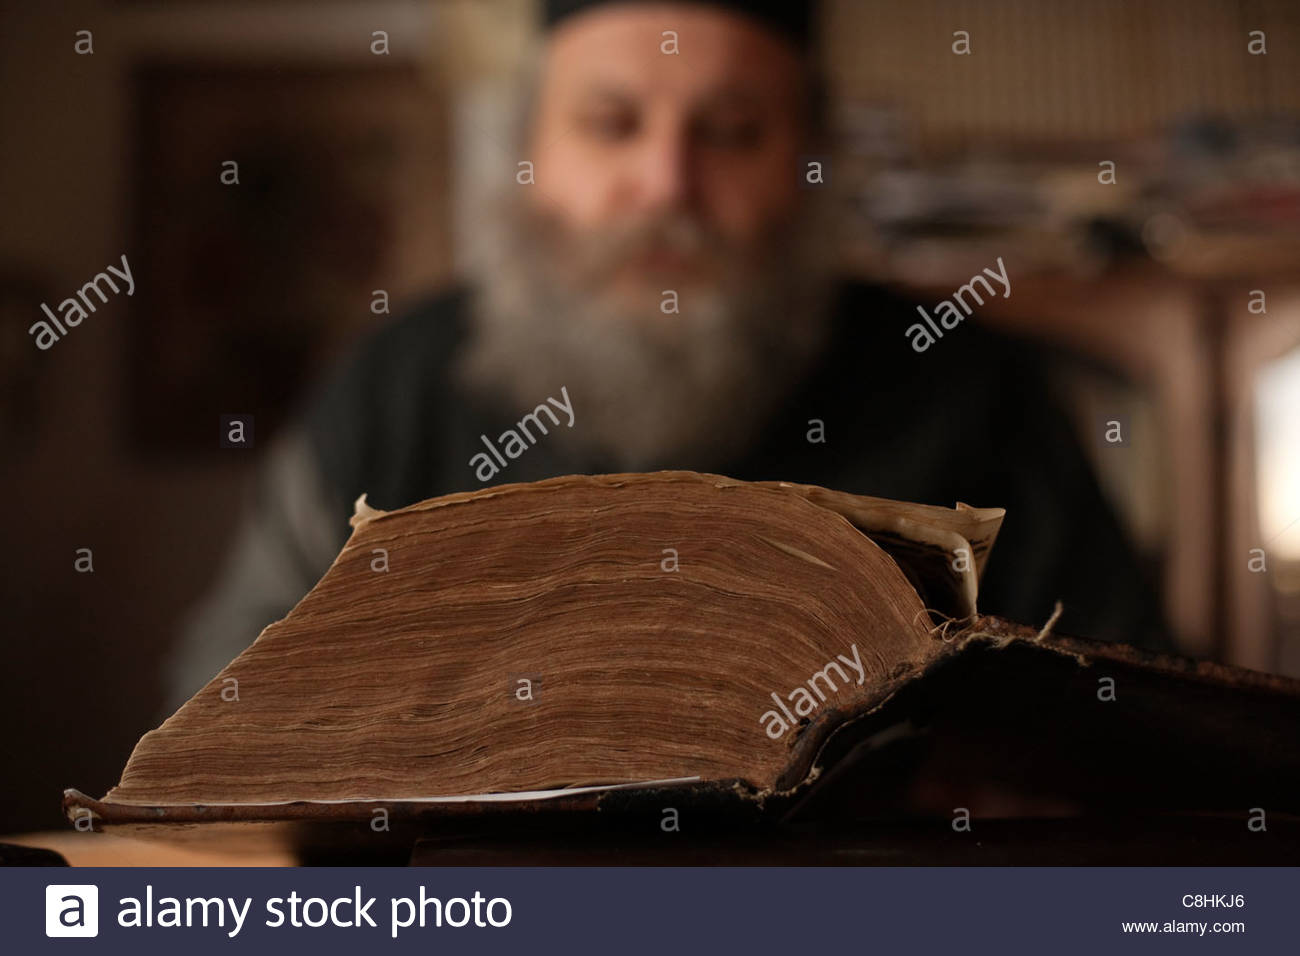 Father Patapios translates ancient Greek texts on his laptop. - Stock Image